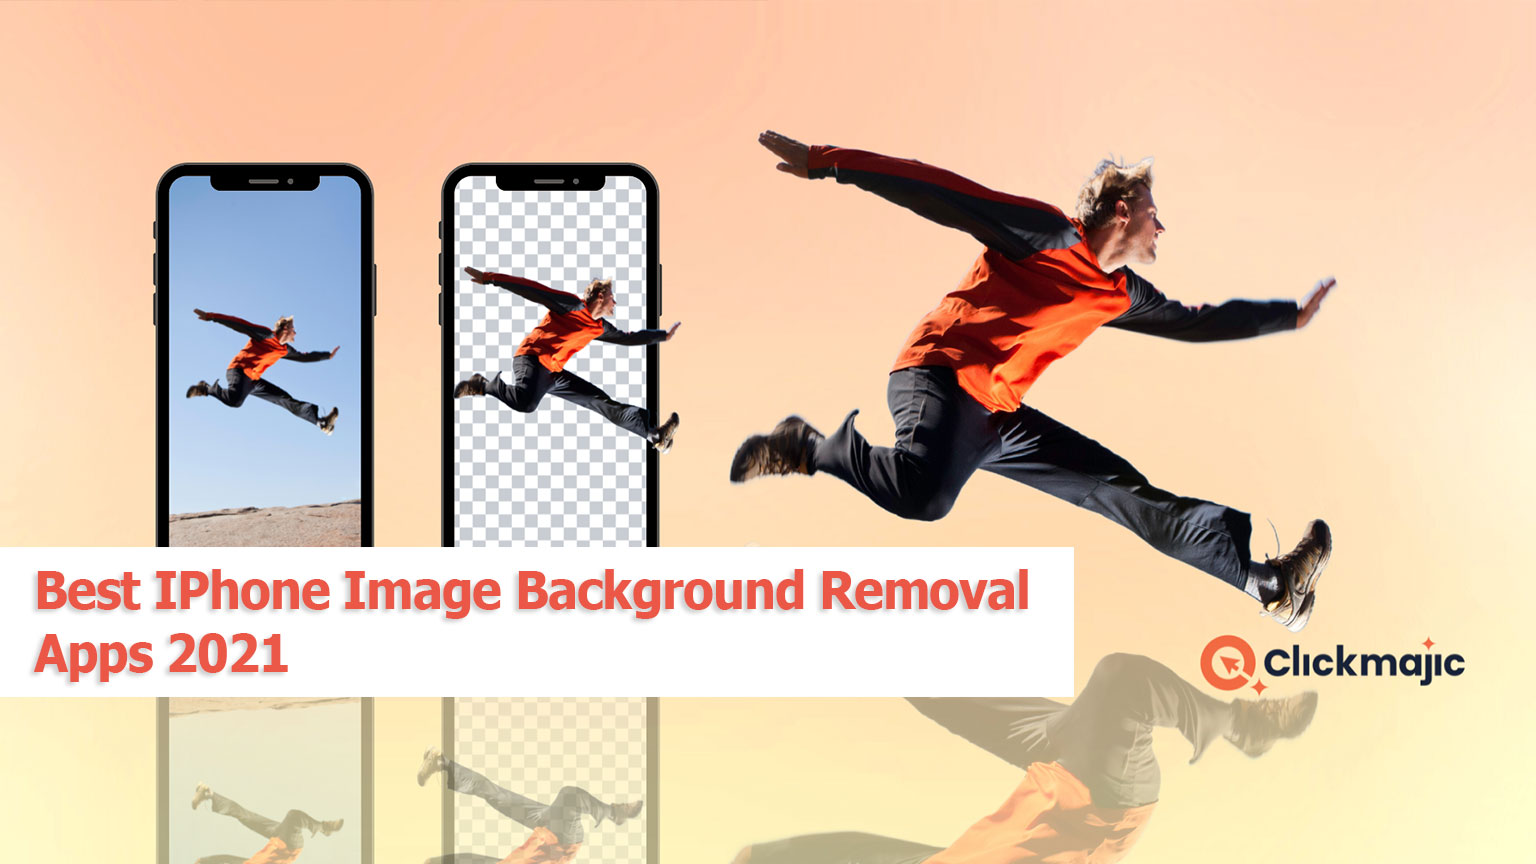 Best IPhone Image Background Removal Apps 2021